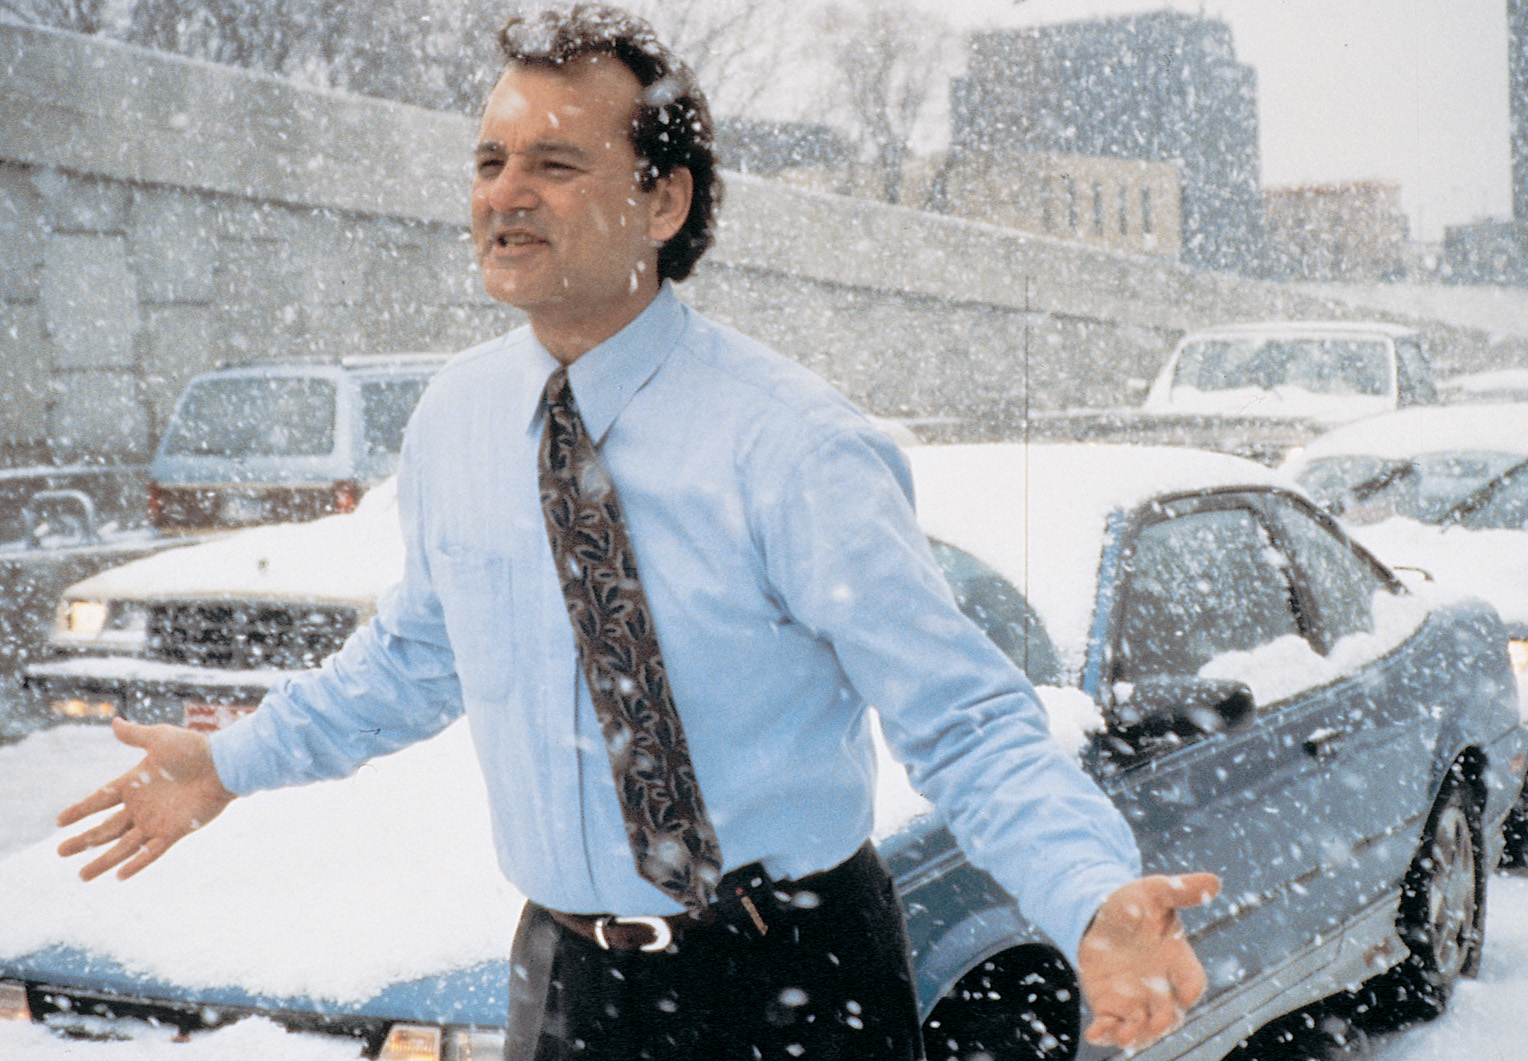 How to prepare emotionally for this crazy blizzard